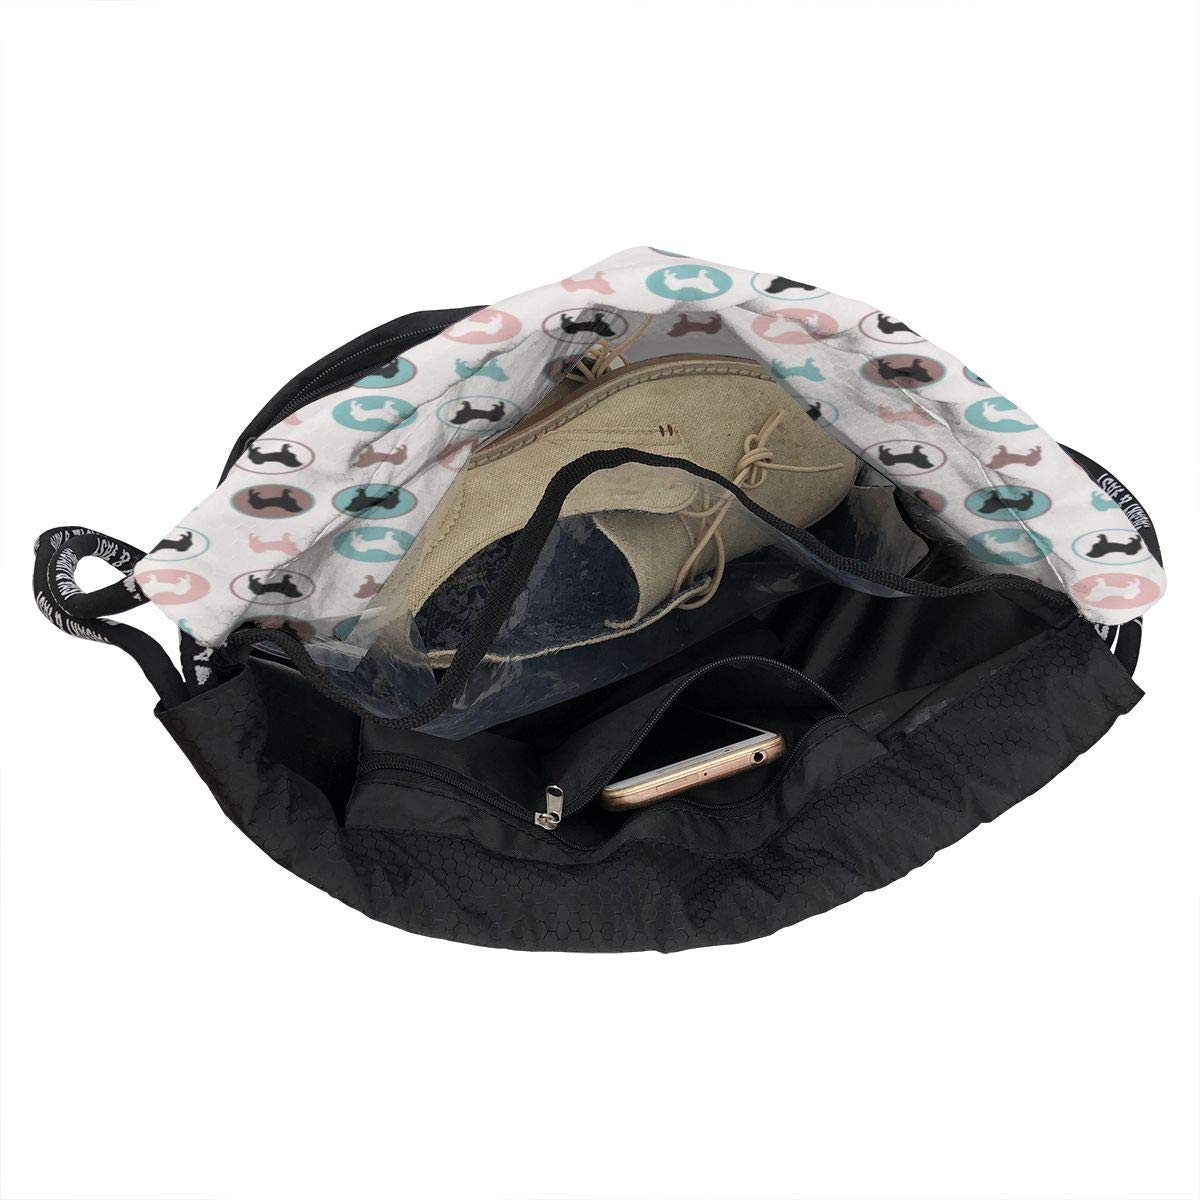 Pugs Circles Drawstring Backpack Sports Athletic Gym Cinch Sack String Storage Bags for Hiking Travel Beach